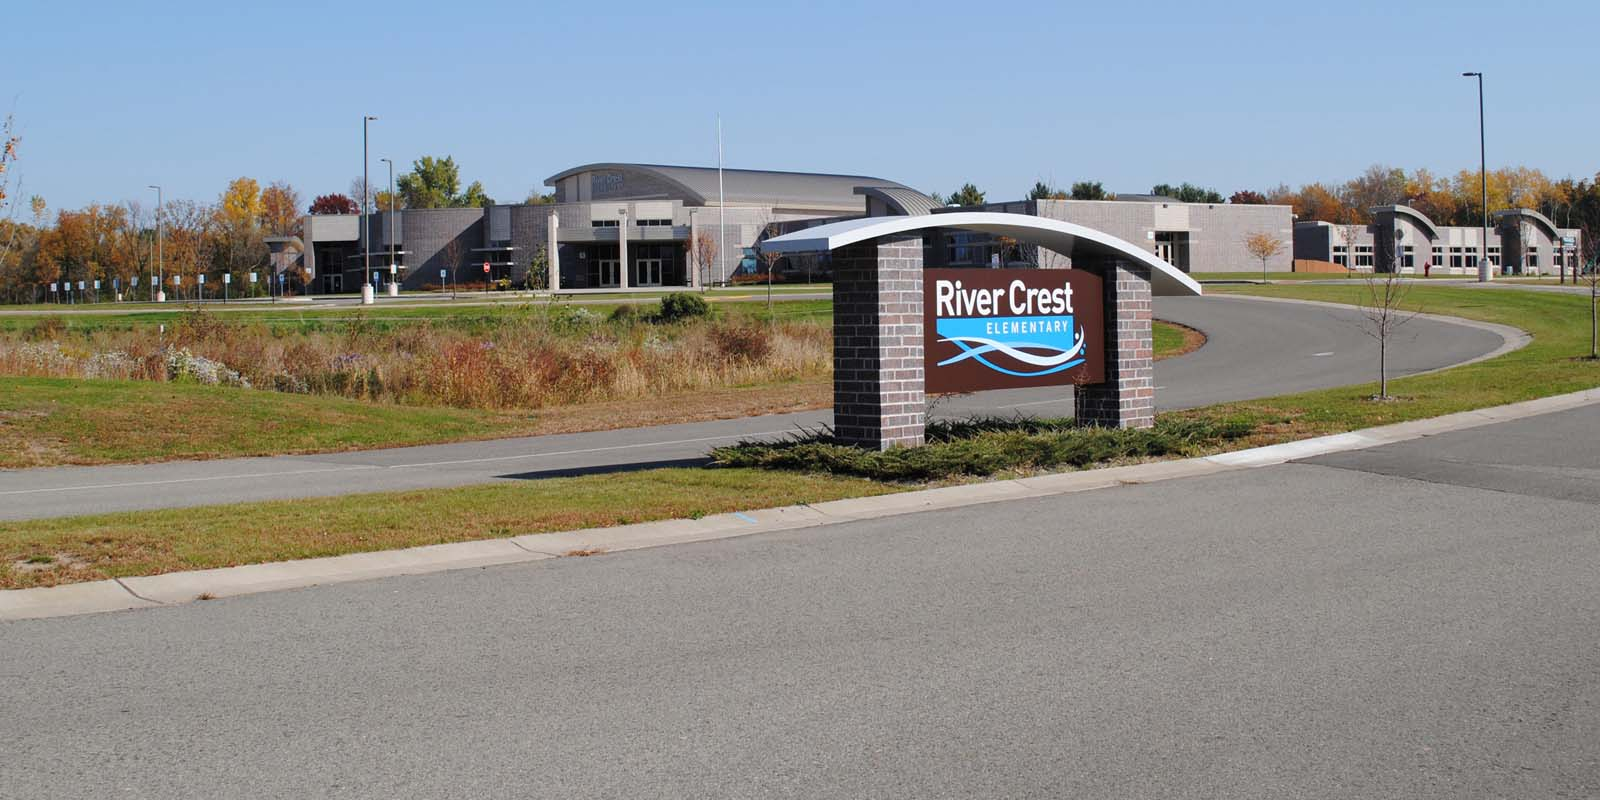 River Crest Elementary photo 1